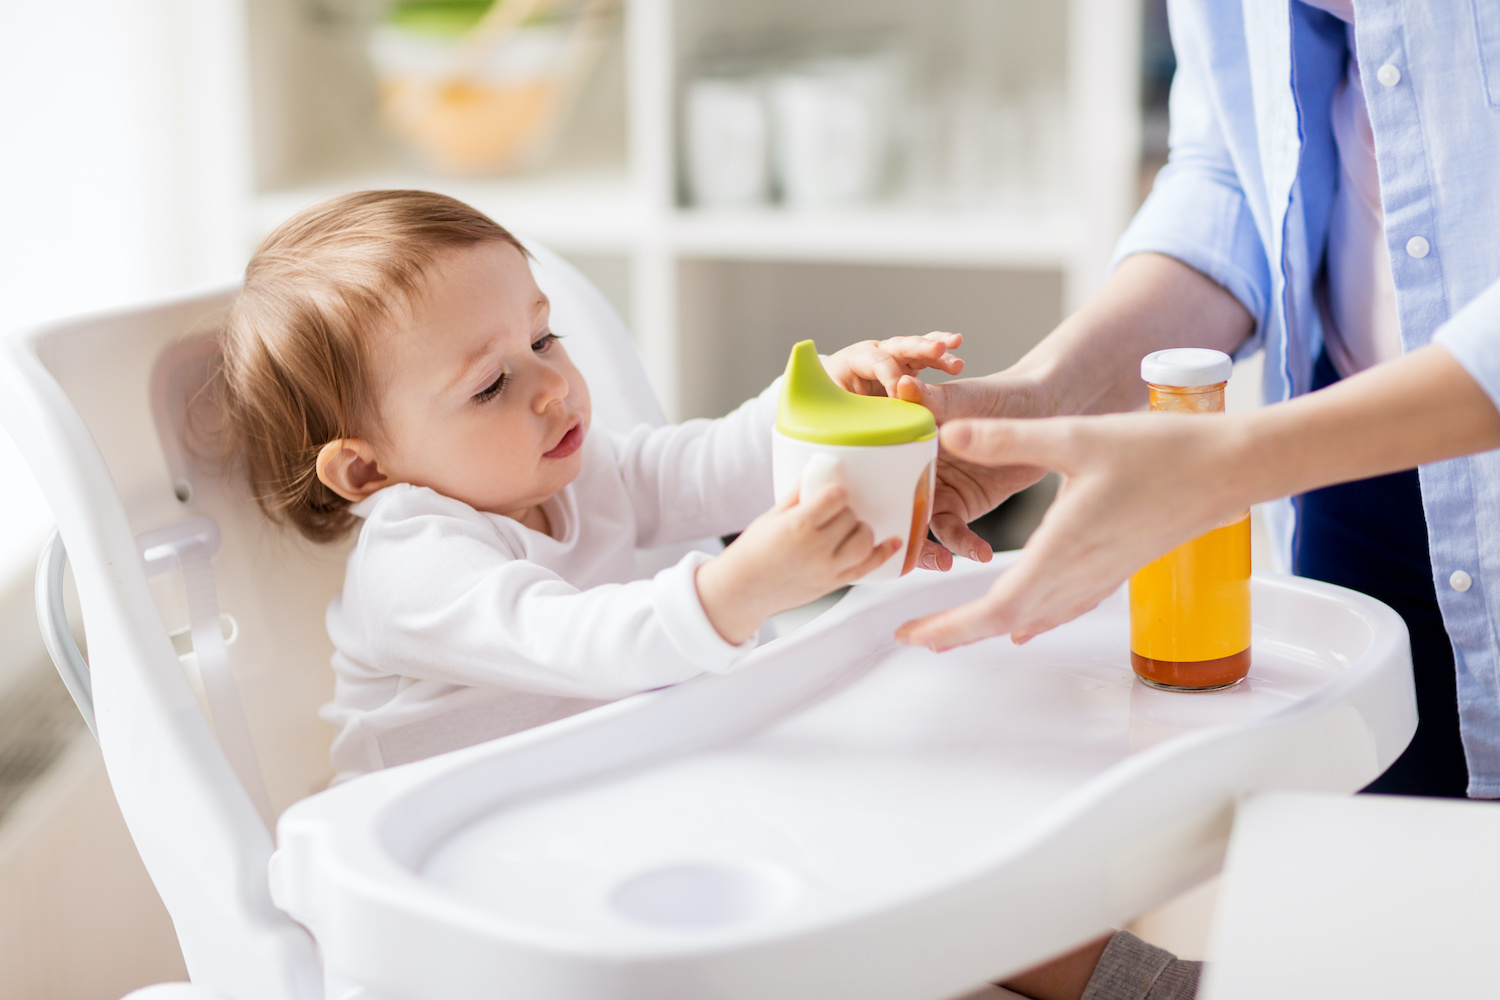 Child with sippy cup in high chair